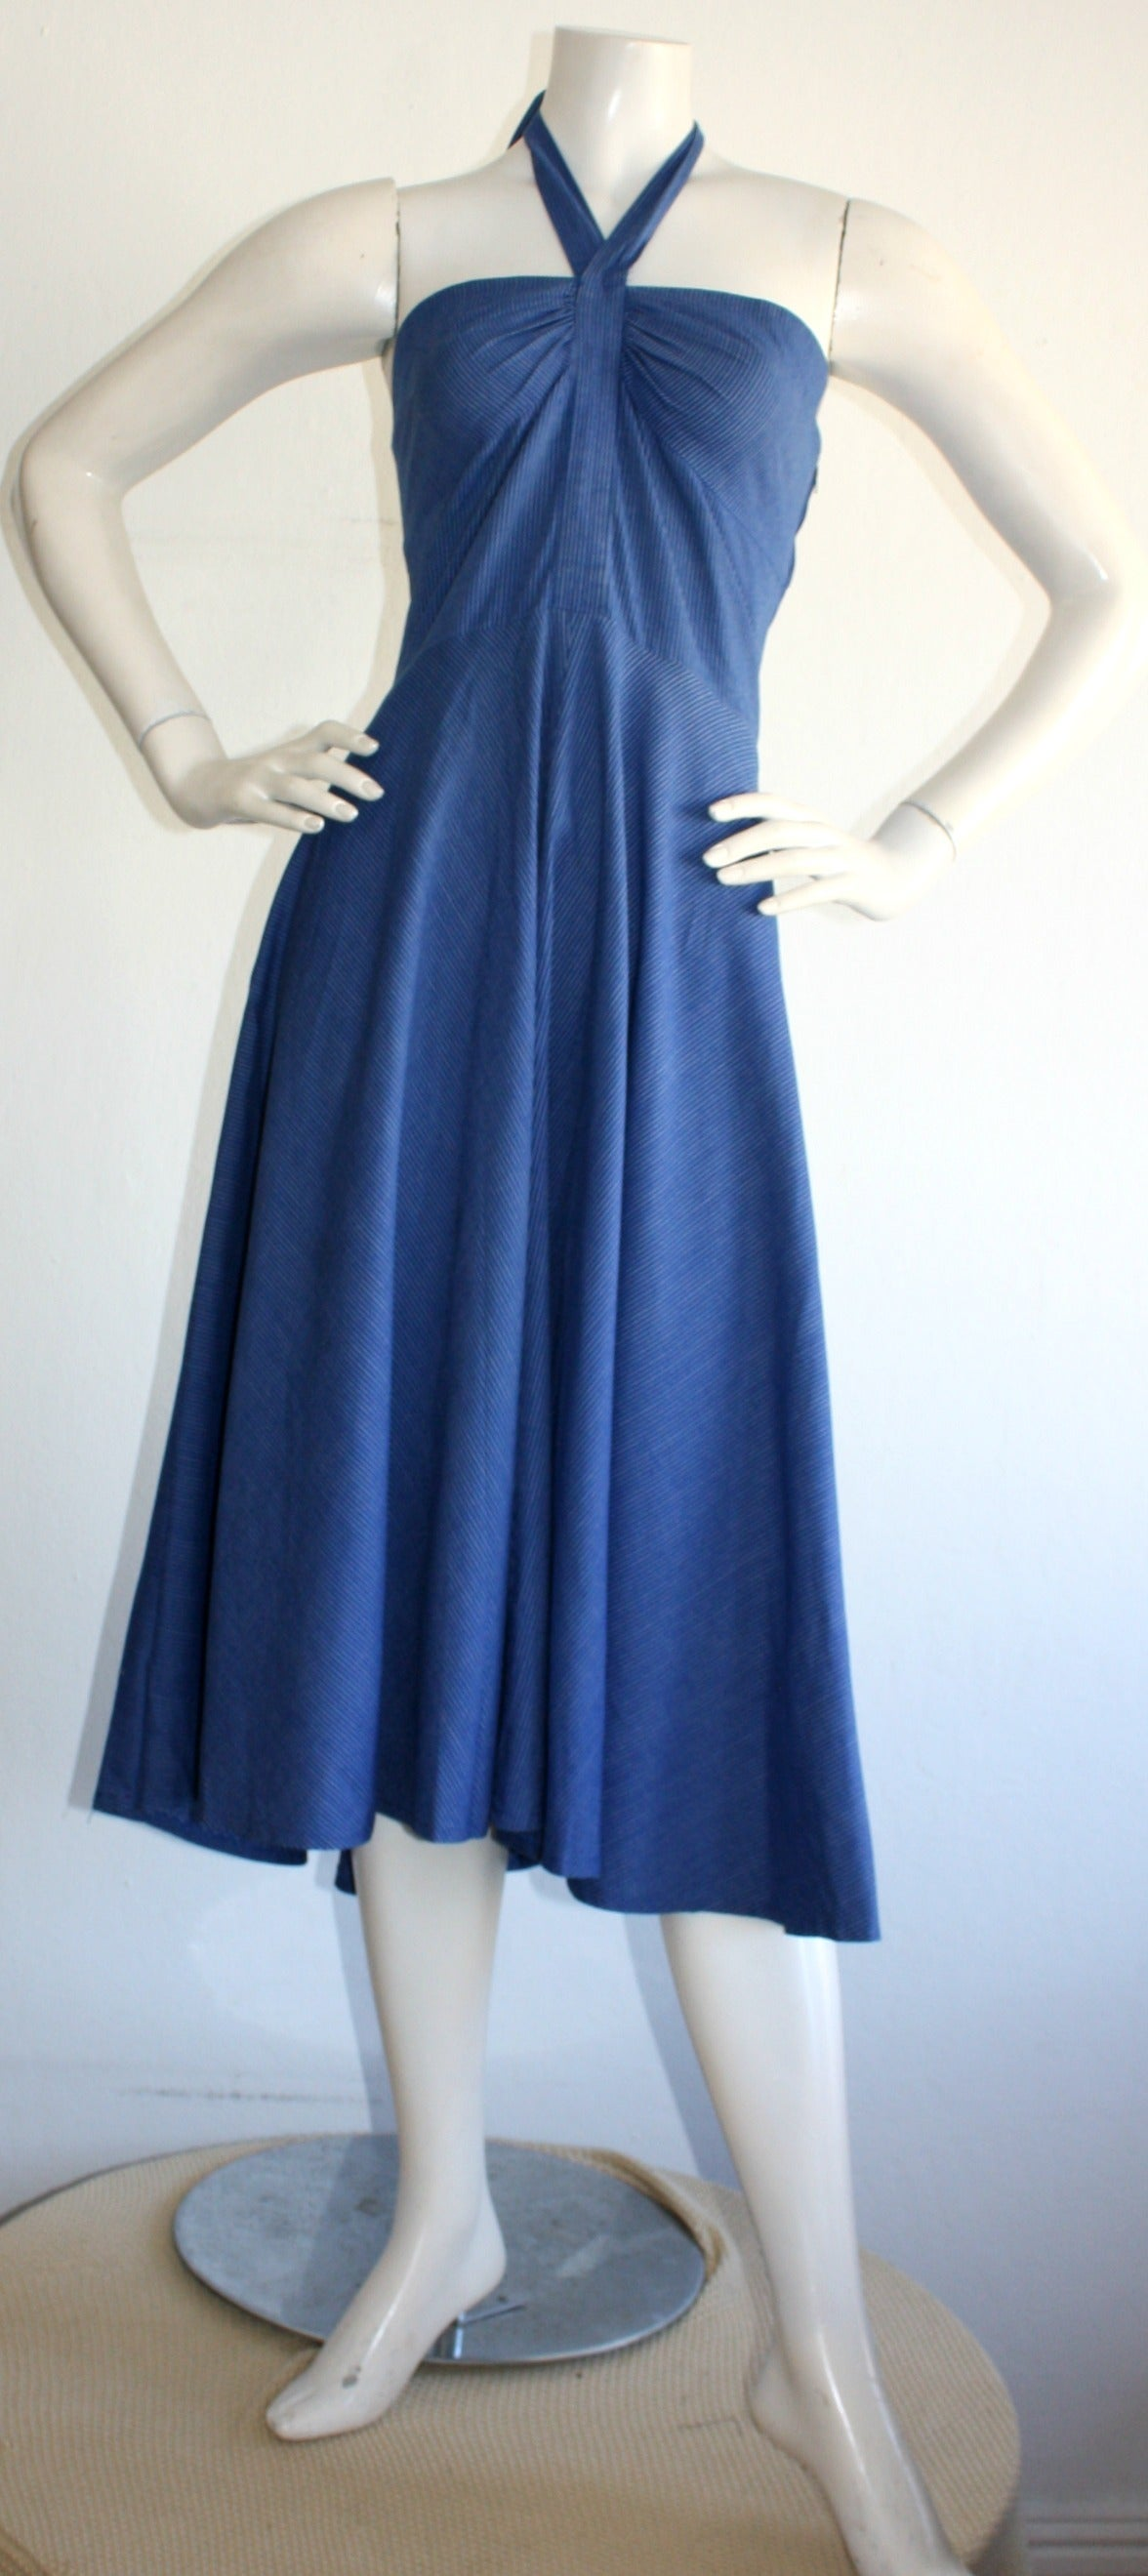 Vintage Guy Laroche Blue Striped Cotton Halter Rockabilly Sun Dress 3